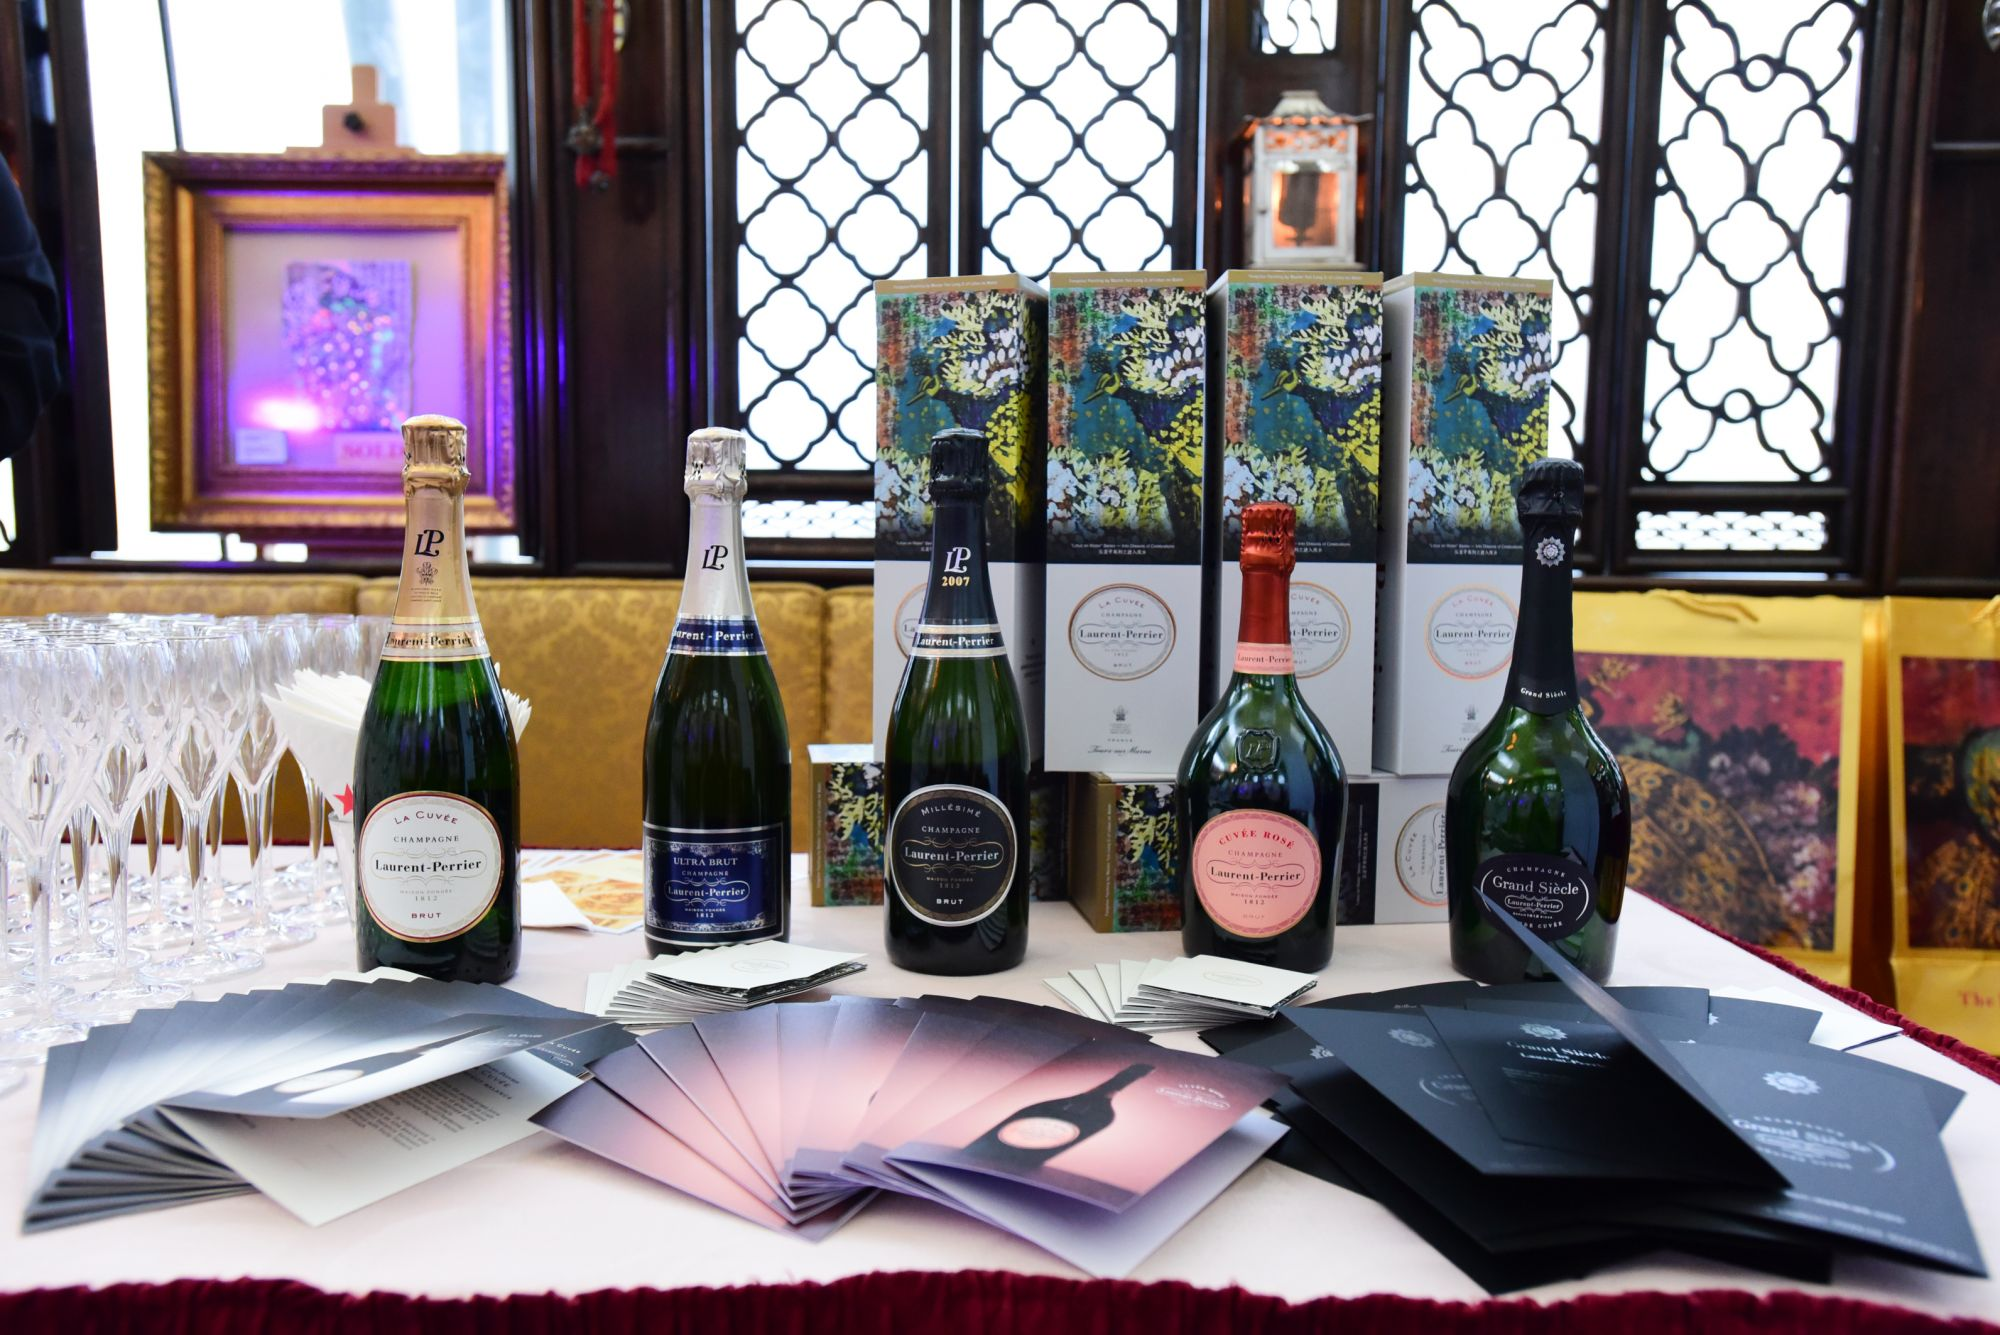 An array of Laurent-Perrier champagne